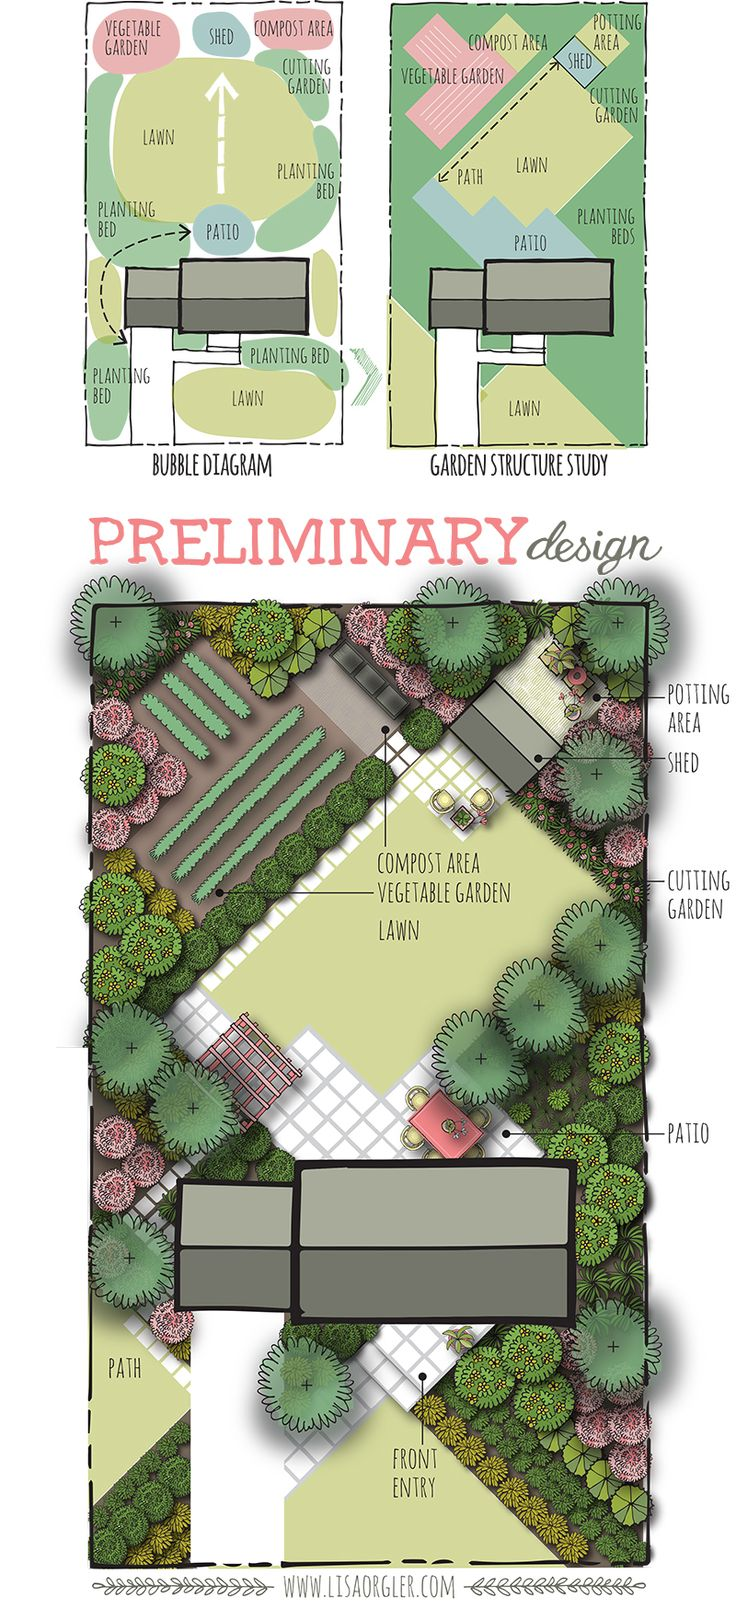 Spatial design is a wonderful way to define your garden spaces and  determine planting bed locations. Luckily there is a process to lead us  through this exciting design journey. A few weeks ago I began introducing  the design process through bubble diagrams, then garden structure studies.  This post will now highlight the next step: the preliminary design.    The preliminary design builds on the garden structure study by adding the  location of plant and hardscape materials, though plants…